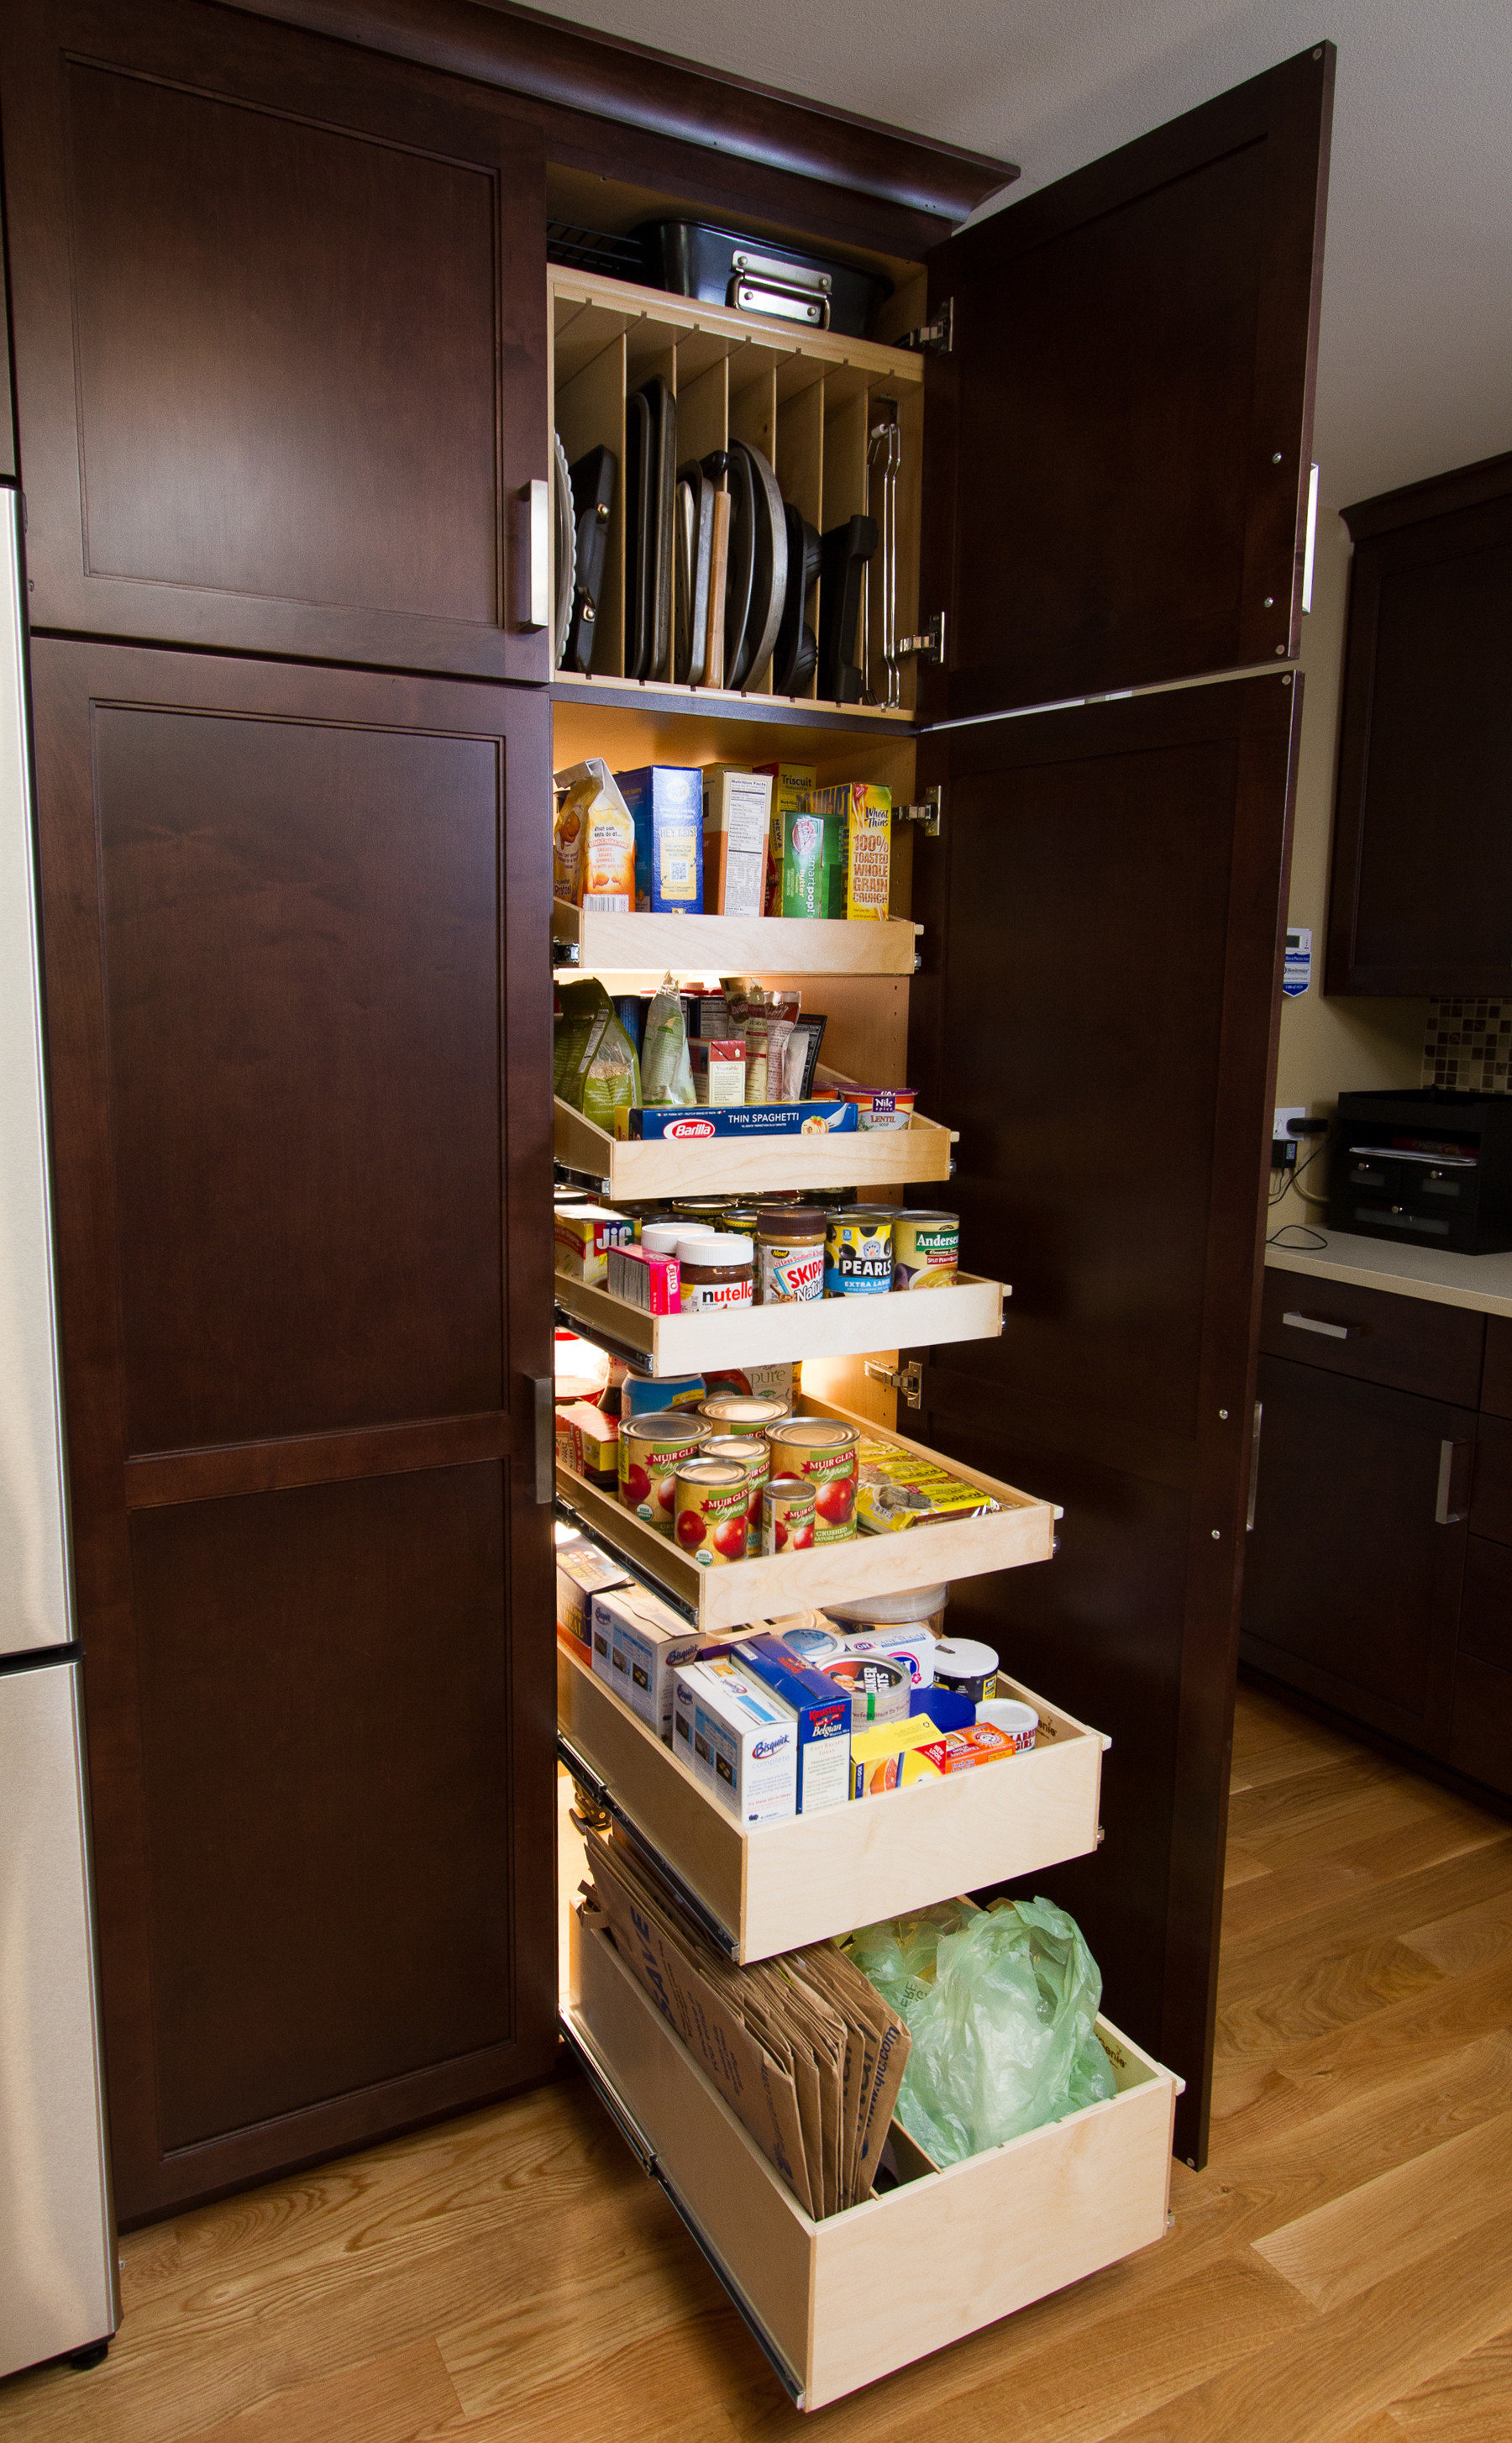 Best ideas about Kitchen Organizer Shelf . Save or Pin Slide Out Pantry Shelves Turn Elizabethtown Homeowner's Now.